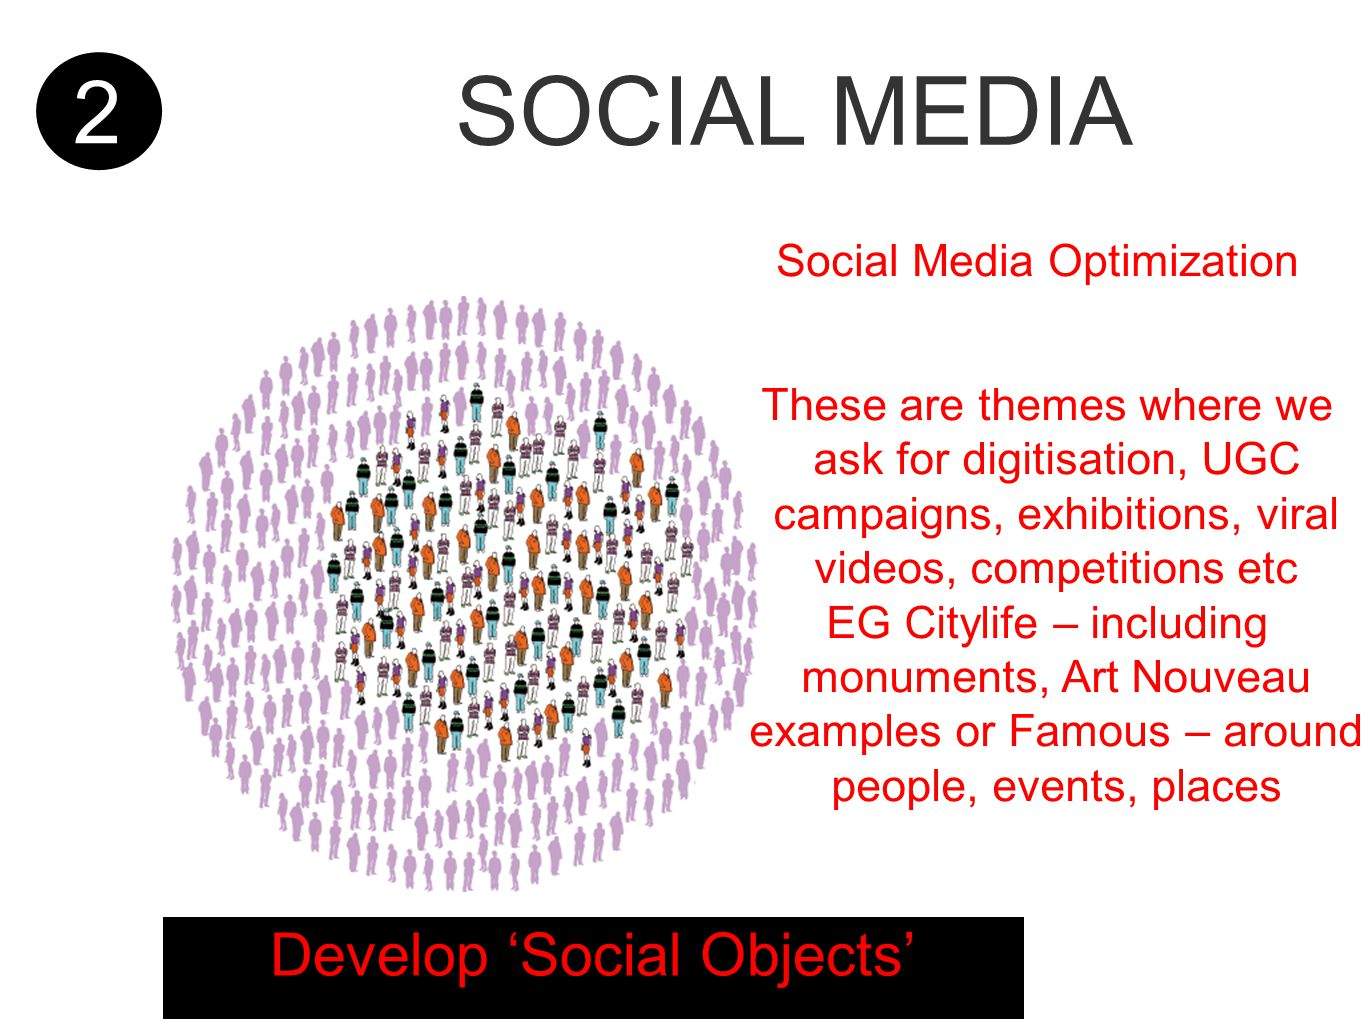 2 SOCIAL MEDIA Develop 'Social Objects' Social Media Optimization These are themes where we ask for digitisation, UGC campaigns, exhibitions, viral videos, competitions etc EG Citylife – including monuments, Art Nouveau examples or Famous – around people, events, places